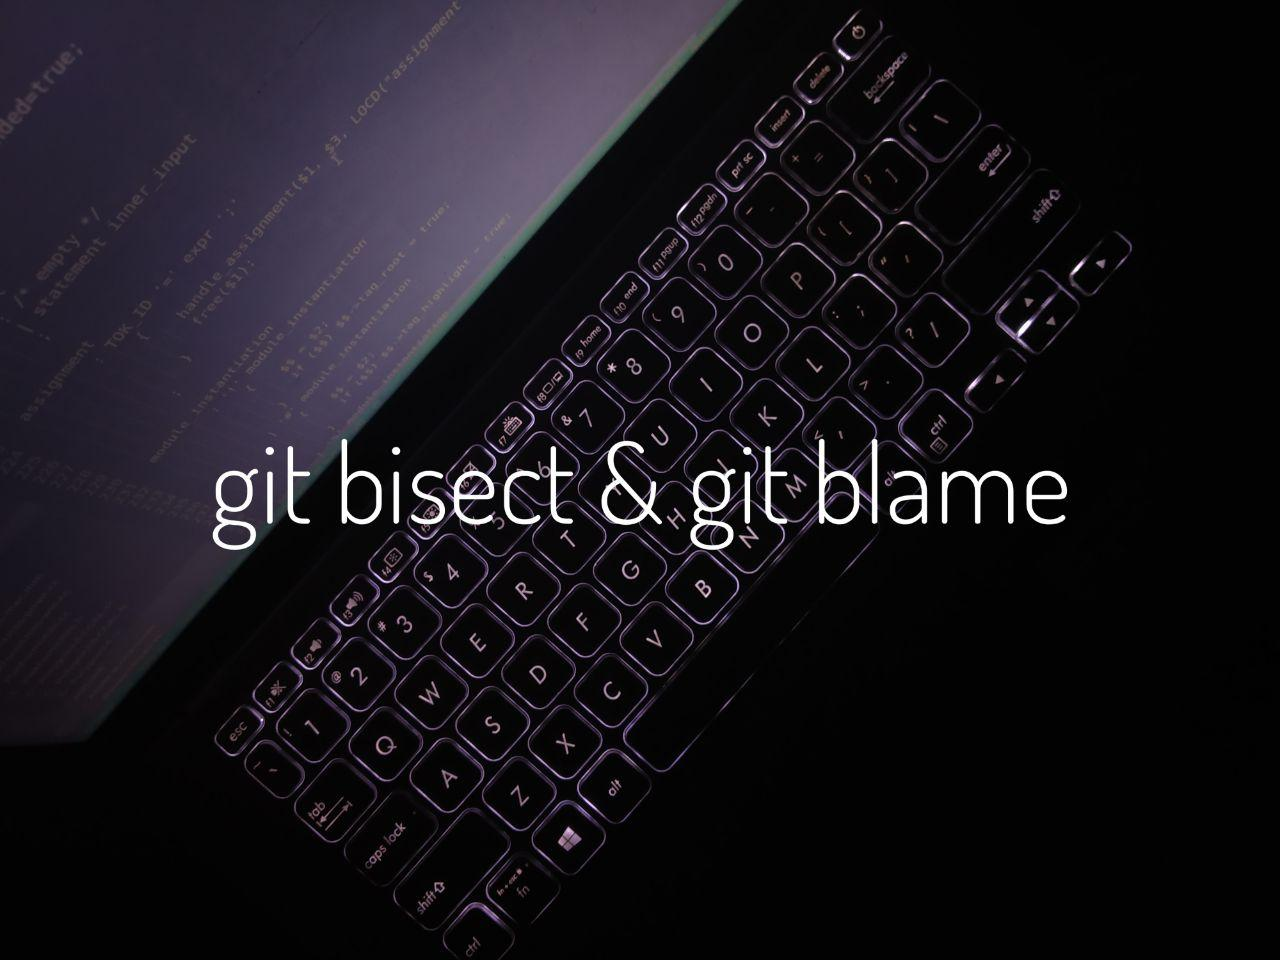 Getting Familiar with Some Cool Git Commands- git bisect & gitblame